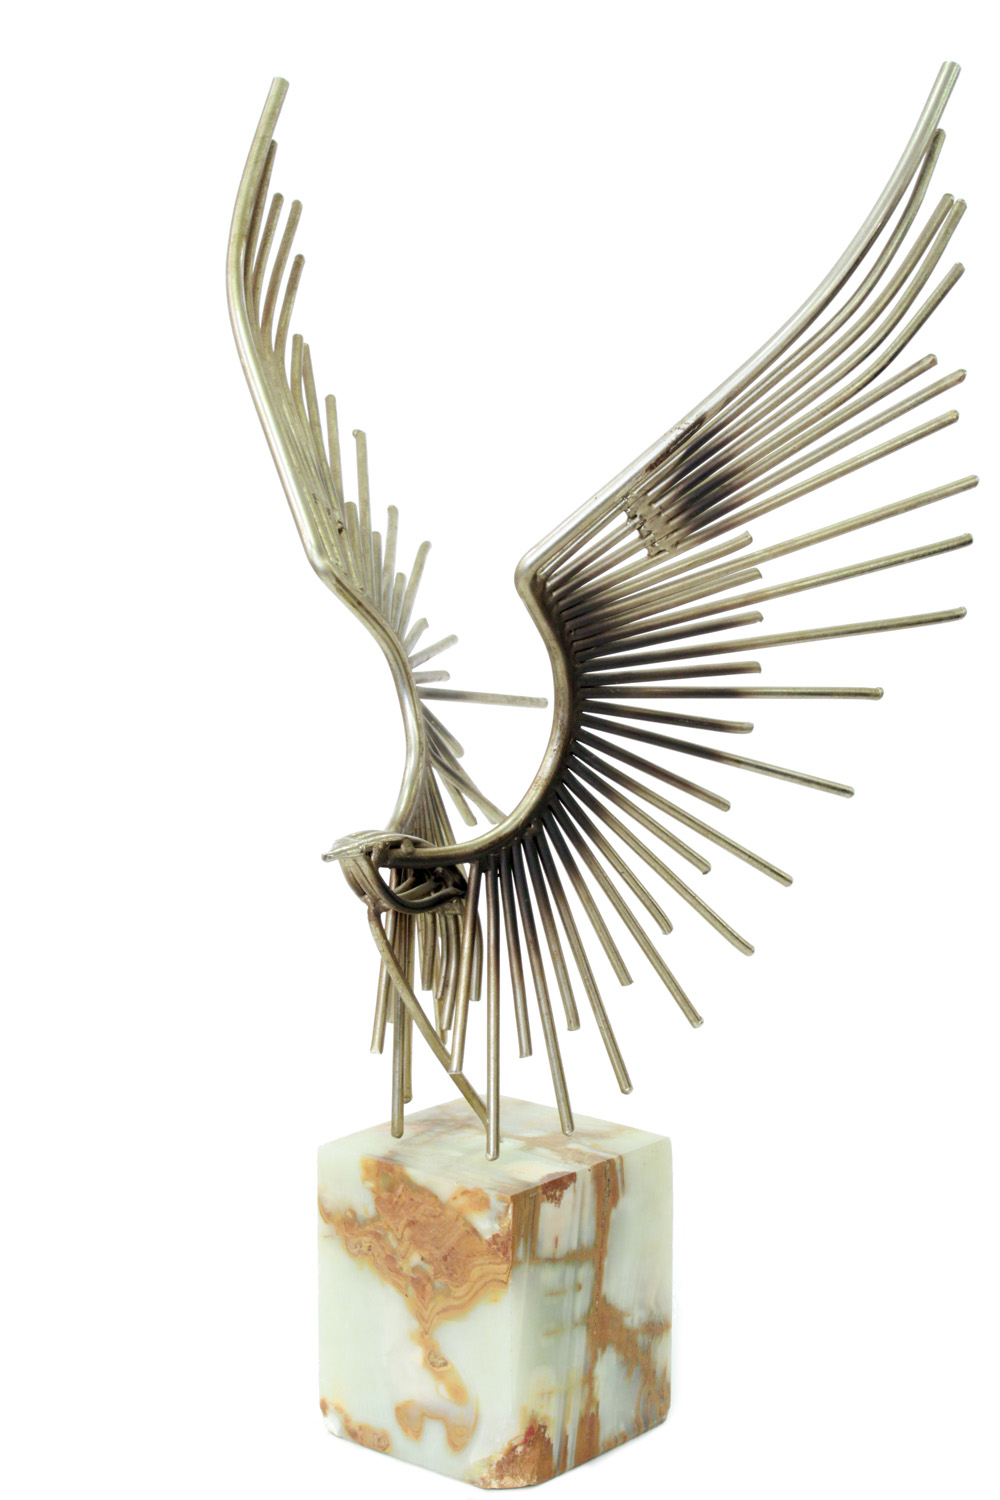 Jere 30 lrg welded bird sculpture33 hires.jpg